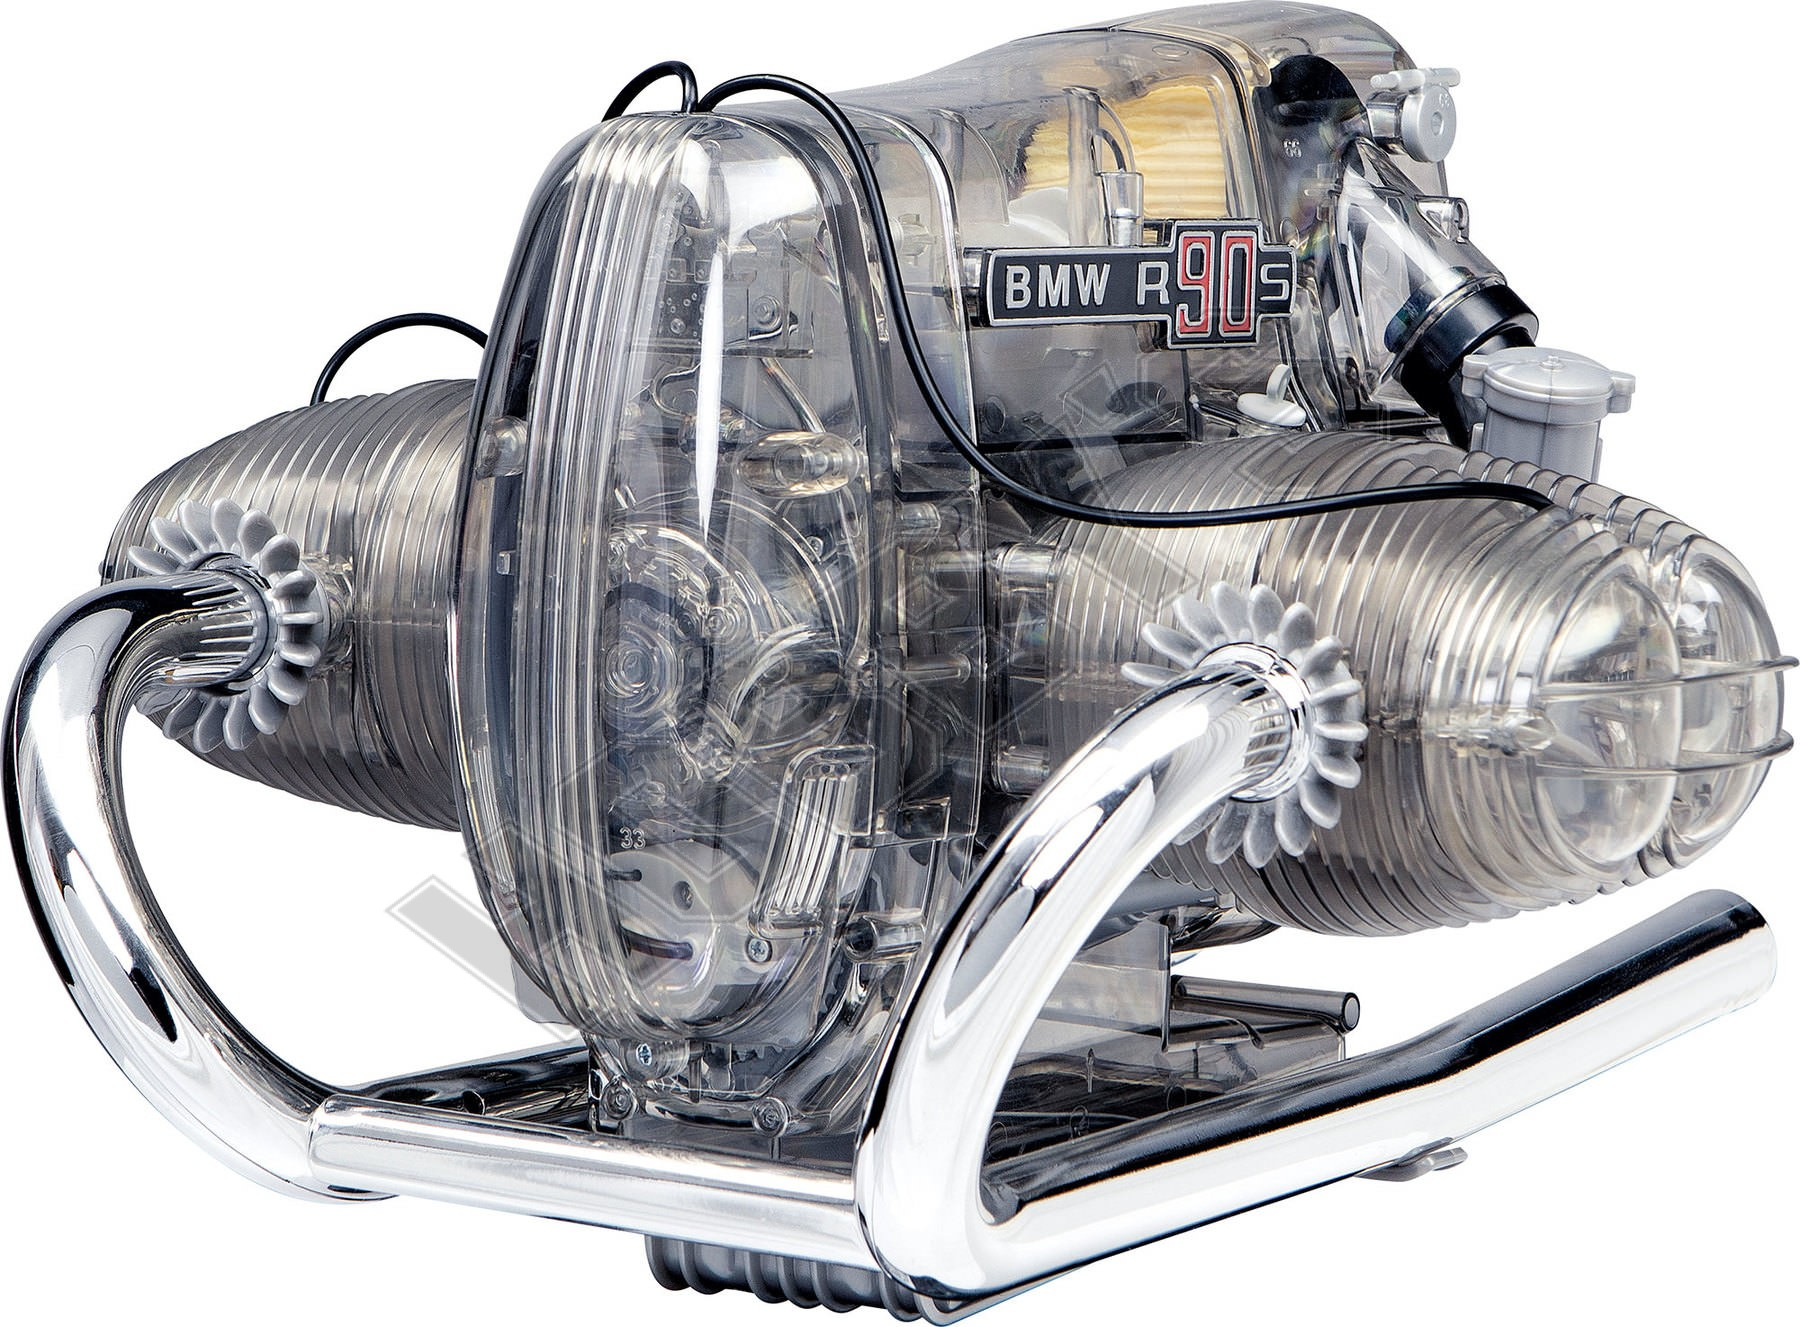 Bmw R 90 S Motorcycle Engine 2